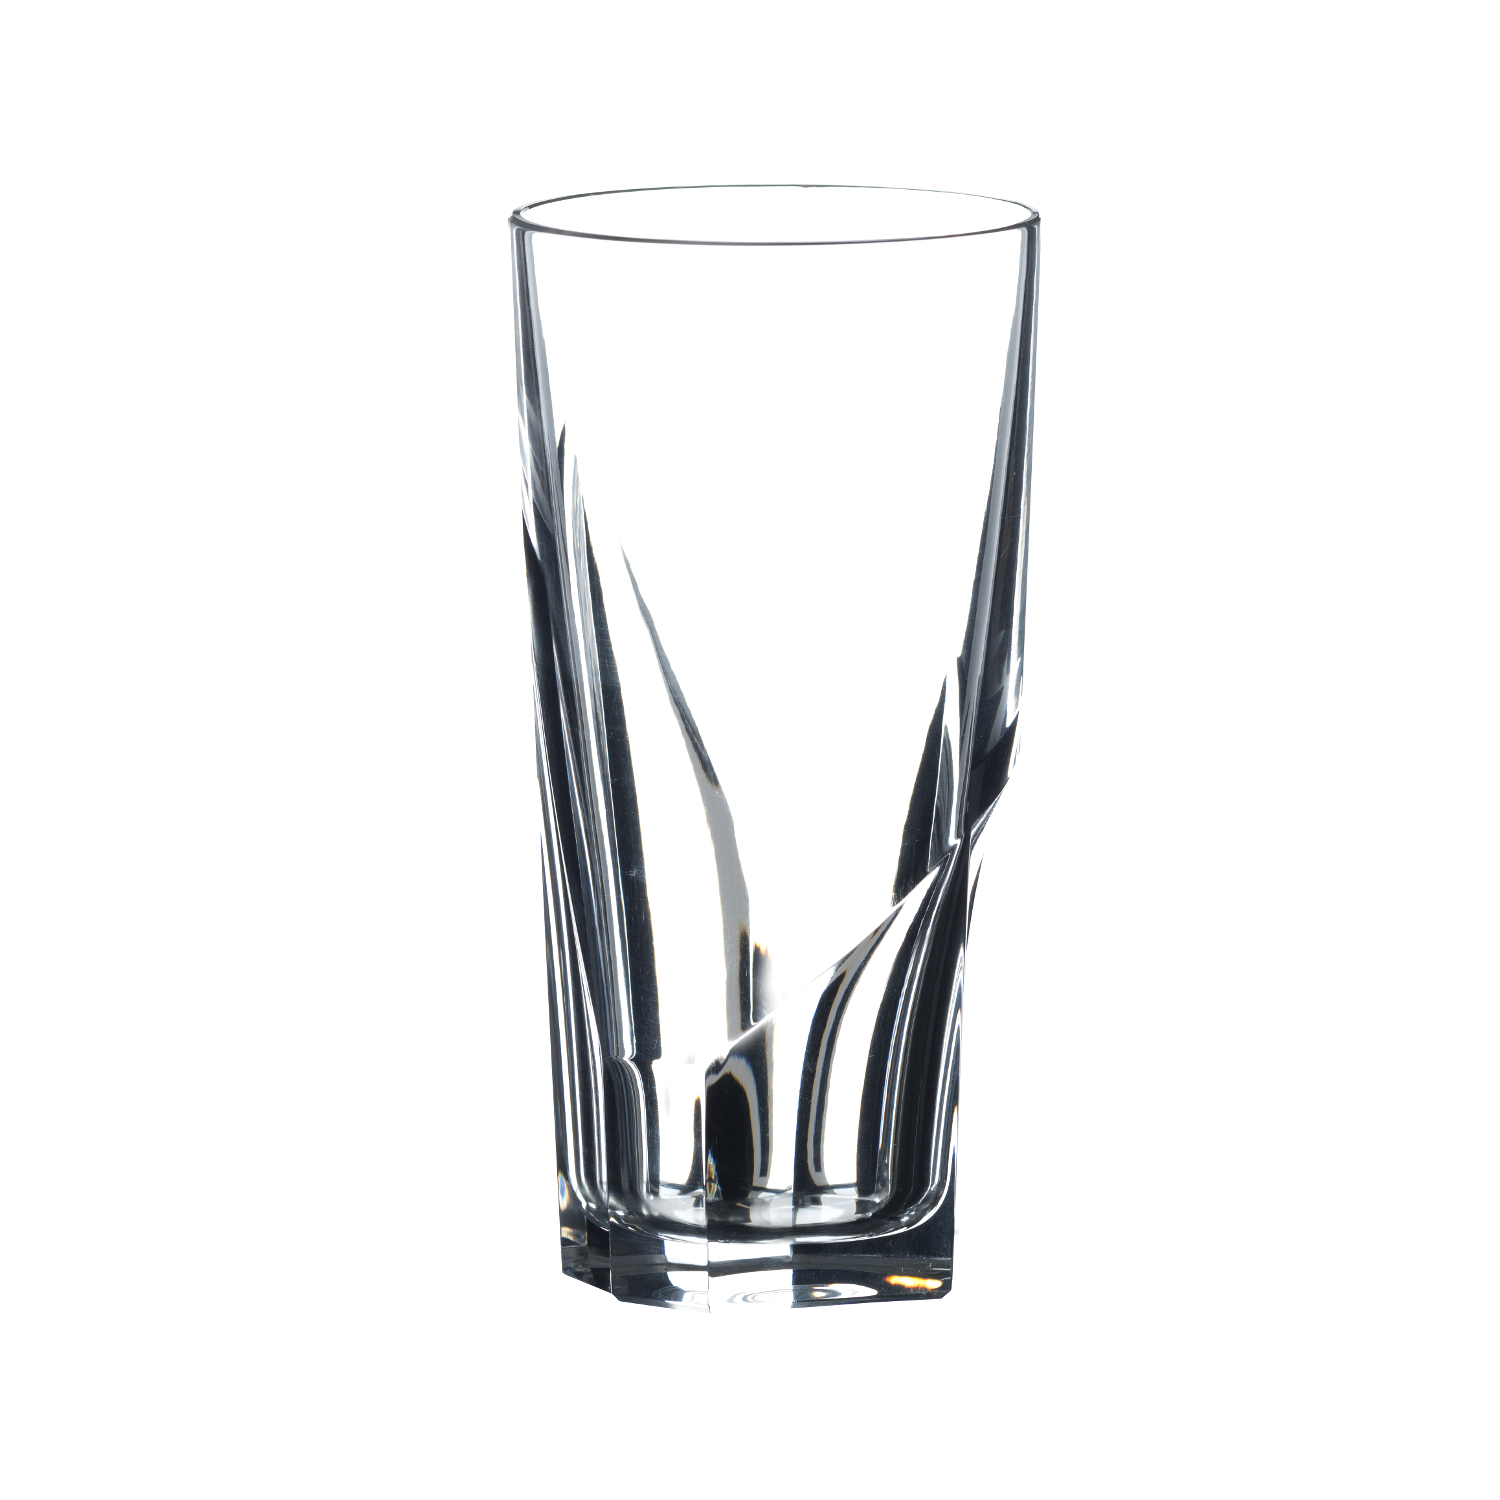 Riedel Tumbler Collection Crystal 13 Ounce Louis Longdrink Glass, Set of 2